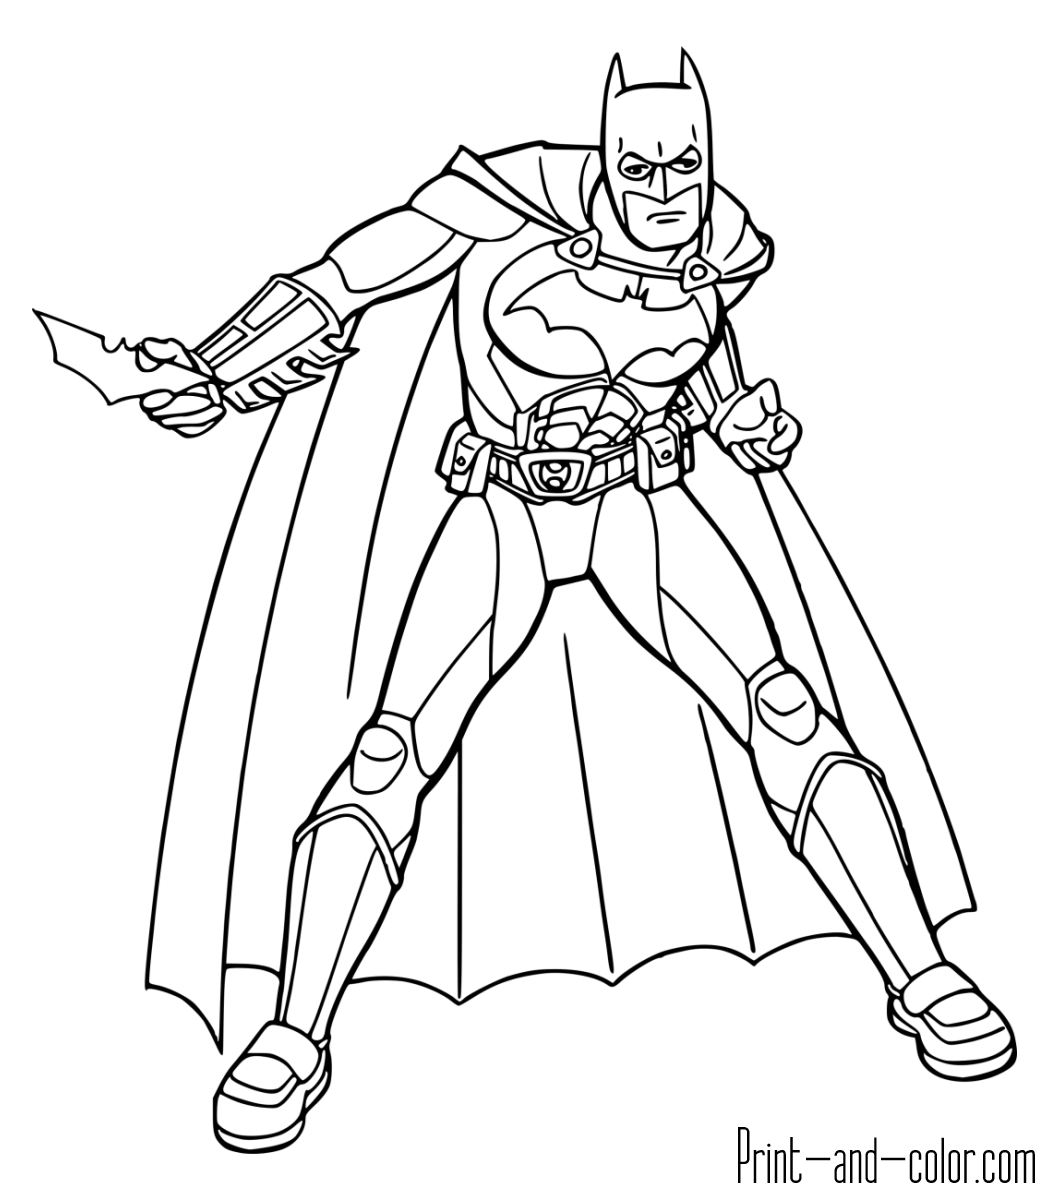 batman printables coloring batman coloring pictures for kids batman printables